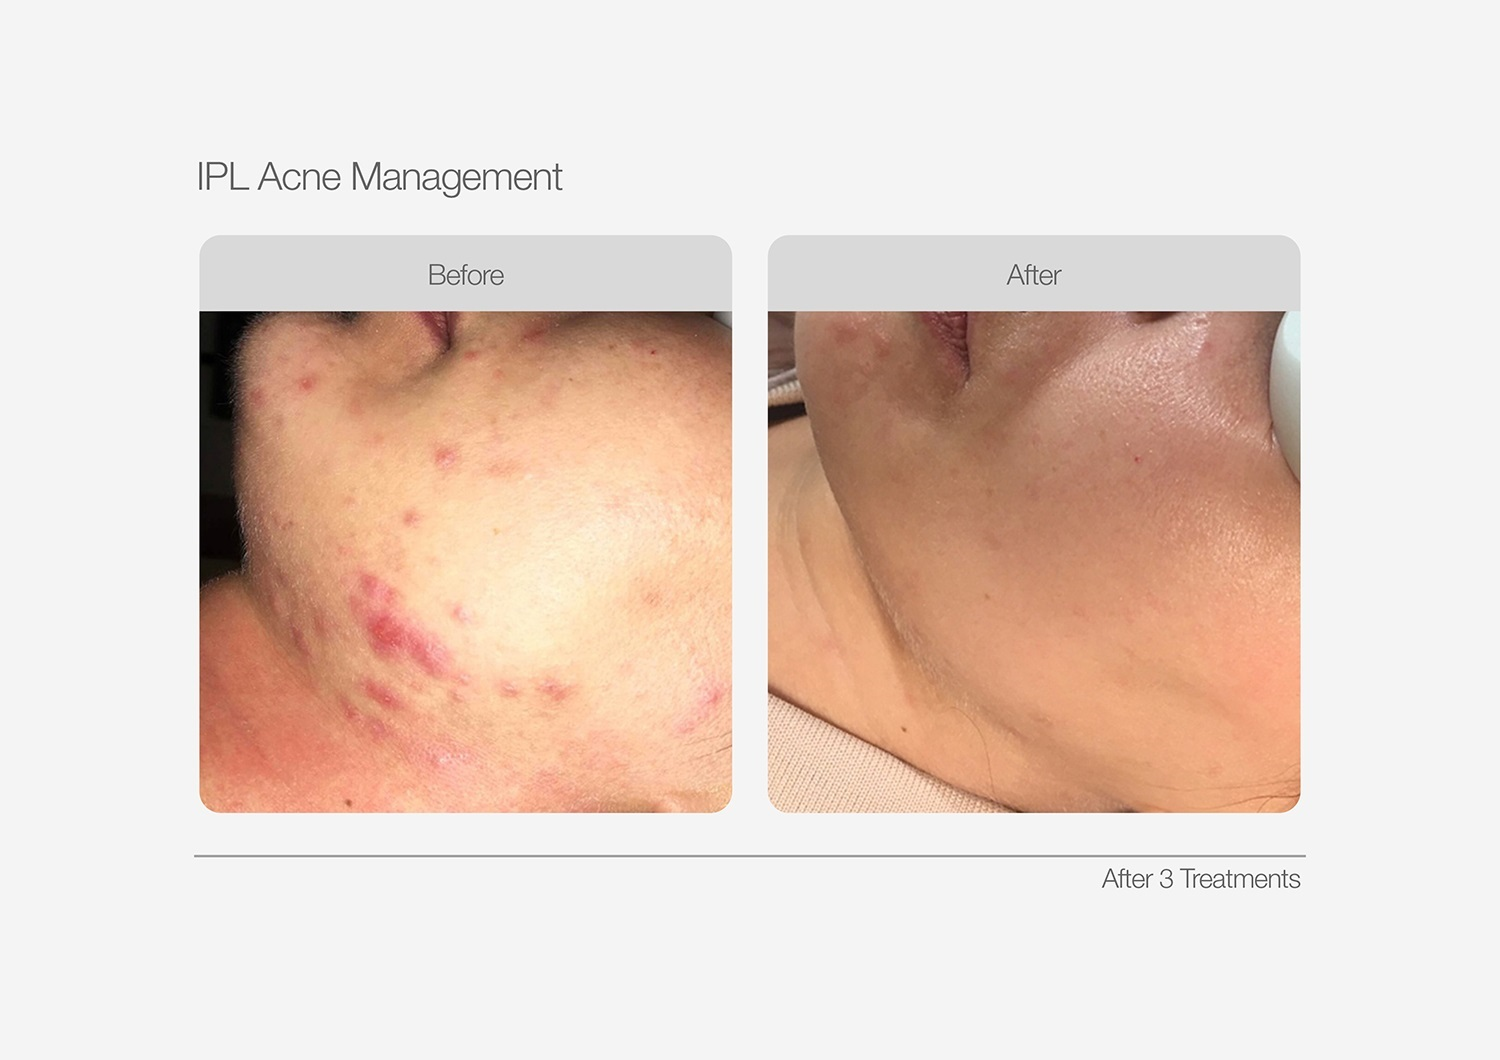 IPL-Acne-Management-Before-After-03